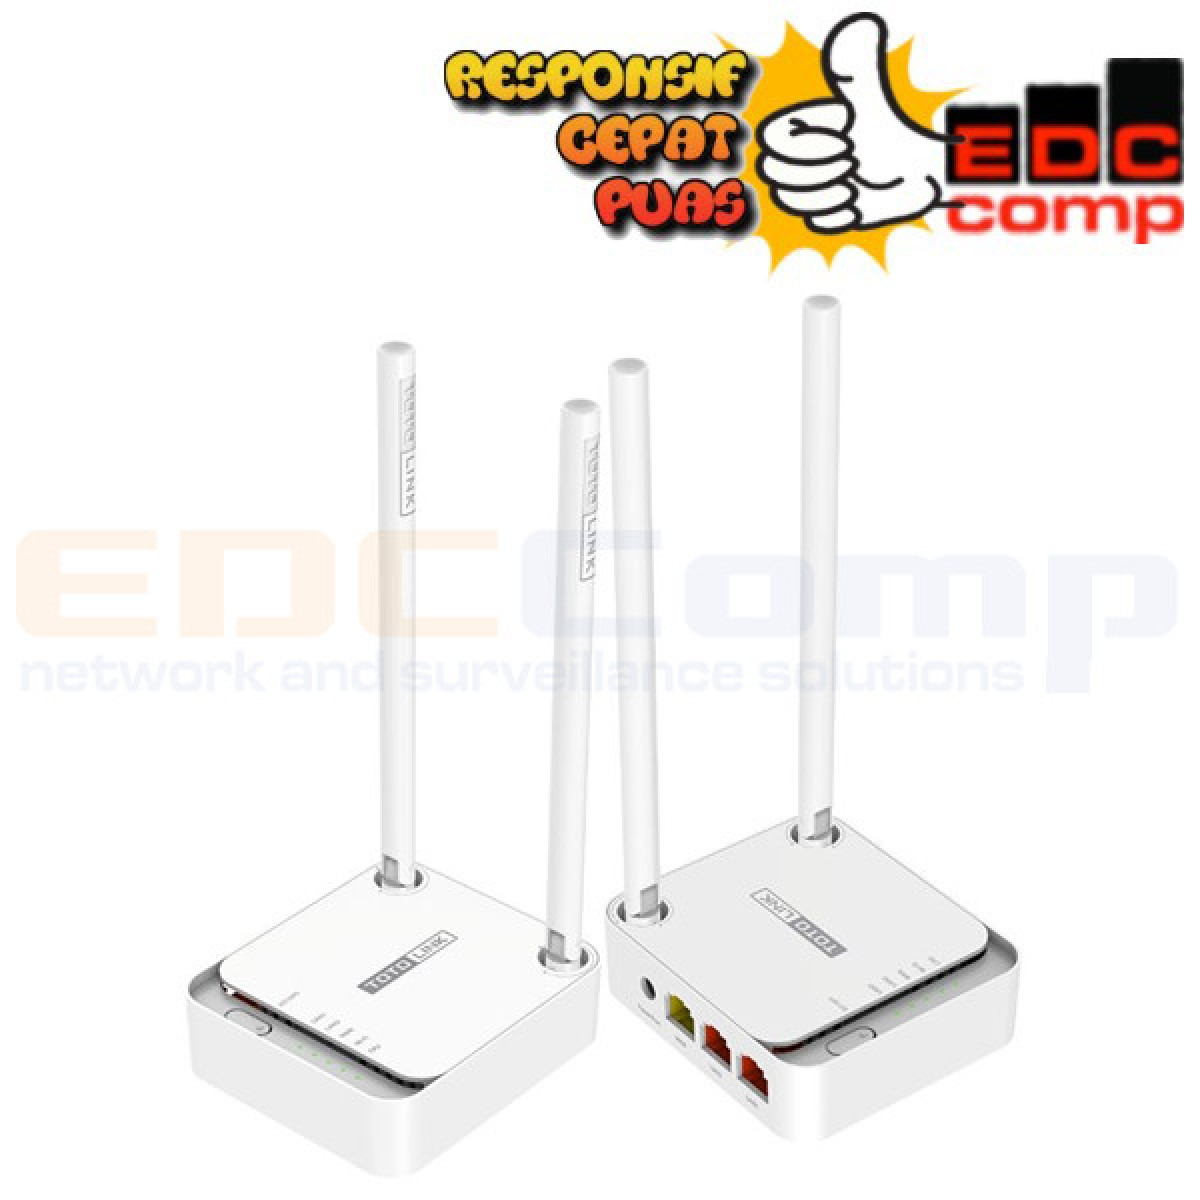 Wireless Router 300Mbps N Speed N200RE TOTO Link - EdcComp